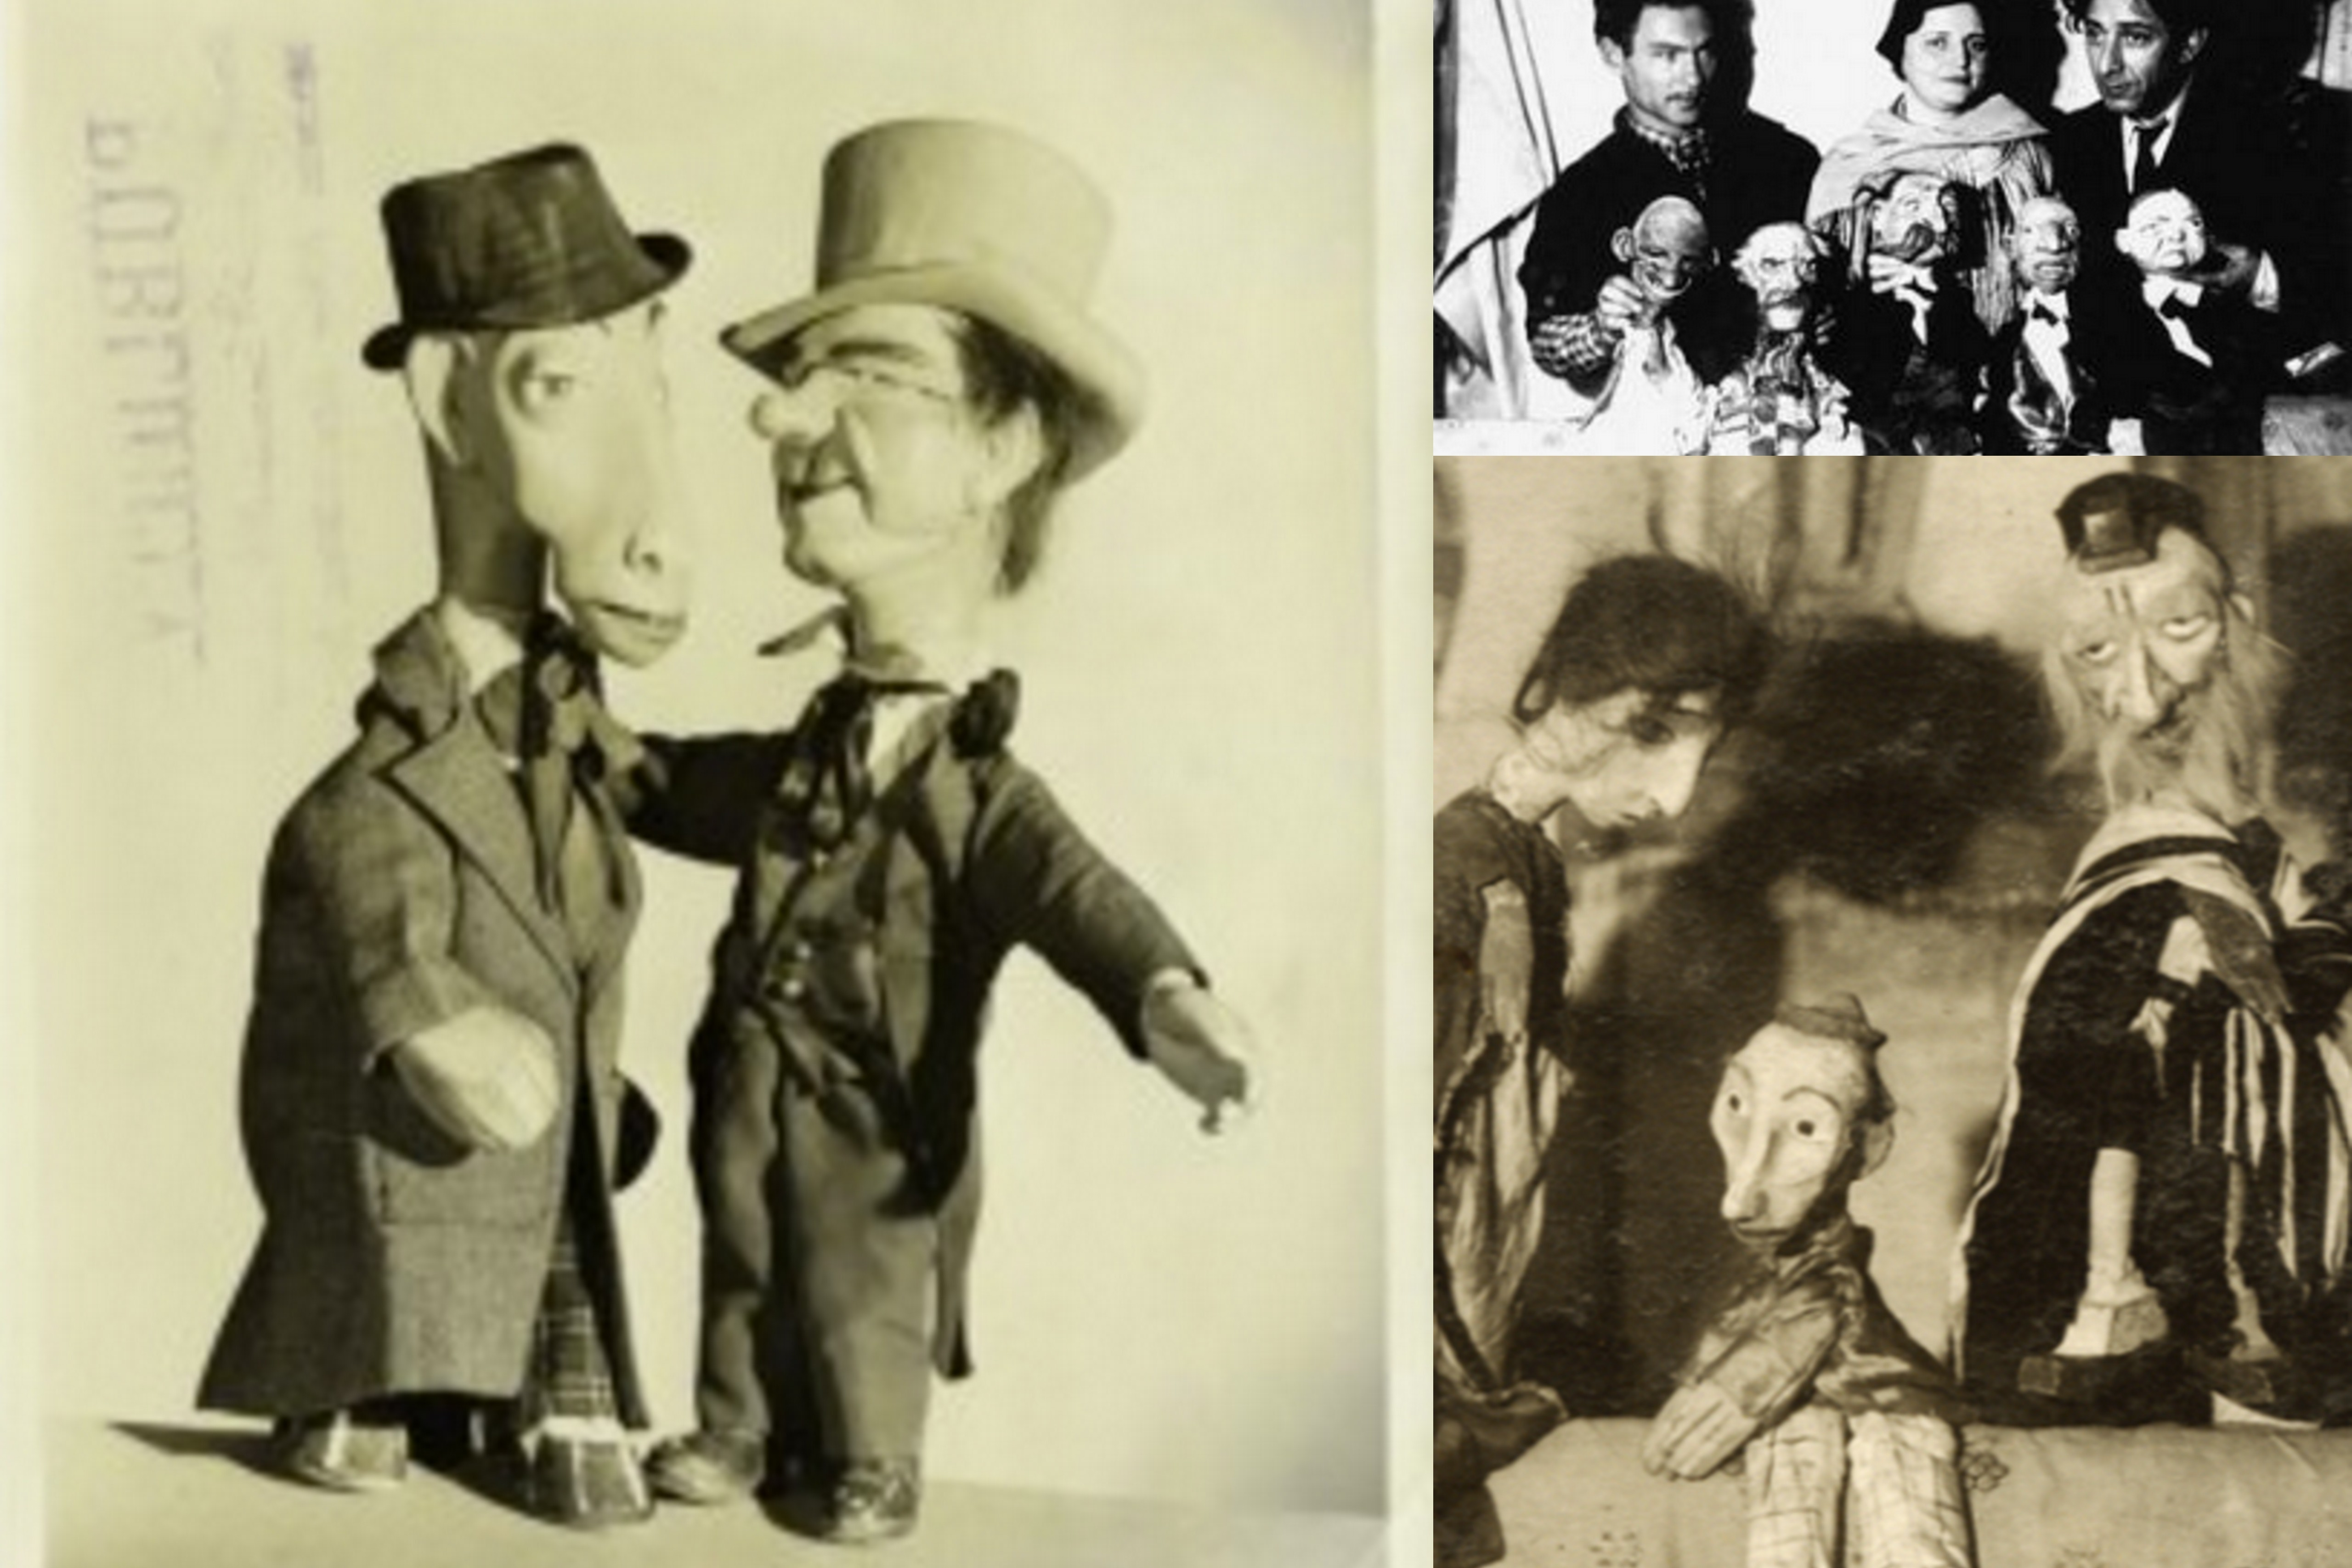 "<p>(right) Yosl Cutler and his puppets, (left) puppets from <em>Bobo the Hobo by</em> Zuni Maud and Nat Norbert.<br>Via <a href=""http://io9.gizmodo.com/5956998/no-headline"" target=""_blank"">1</a>, <a href=""http://jewishcurrents.org/june-12-modicut-theater/"" target=""_blank"">2</a>, <a href=""http://muse.jhu.edu/article/32954"" target=""_blank"">3 </a></p>"